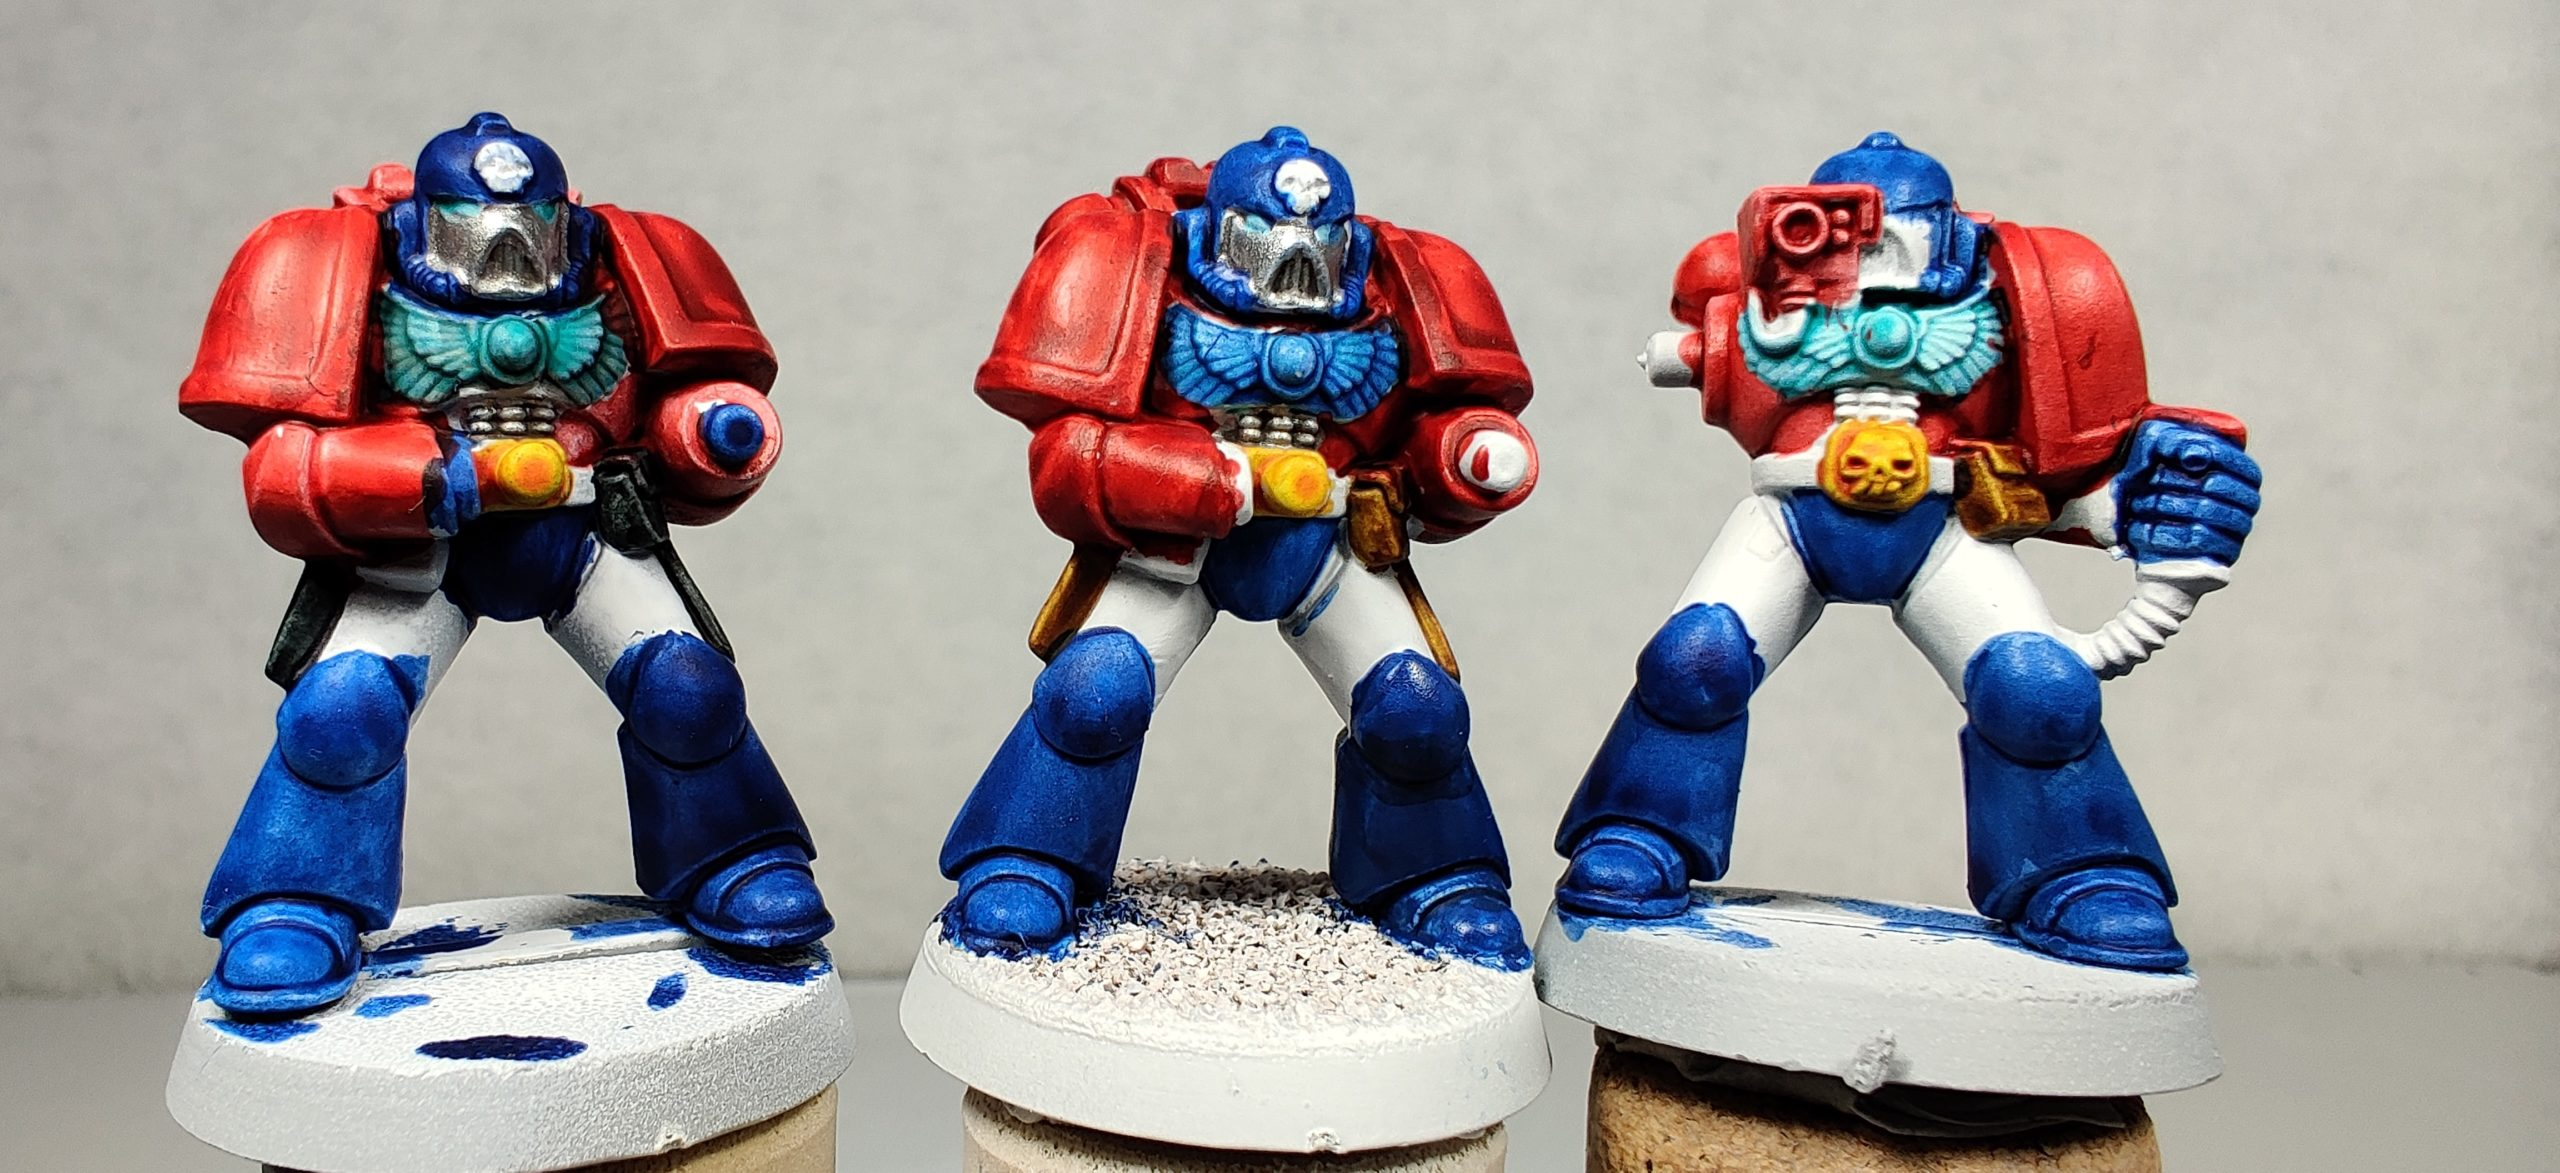 All three 2nd-Edition Space Marine test models of the Fists of the Prime chapter.